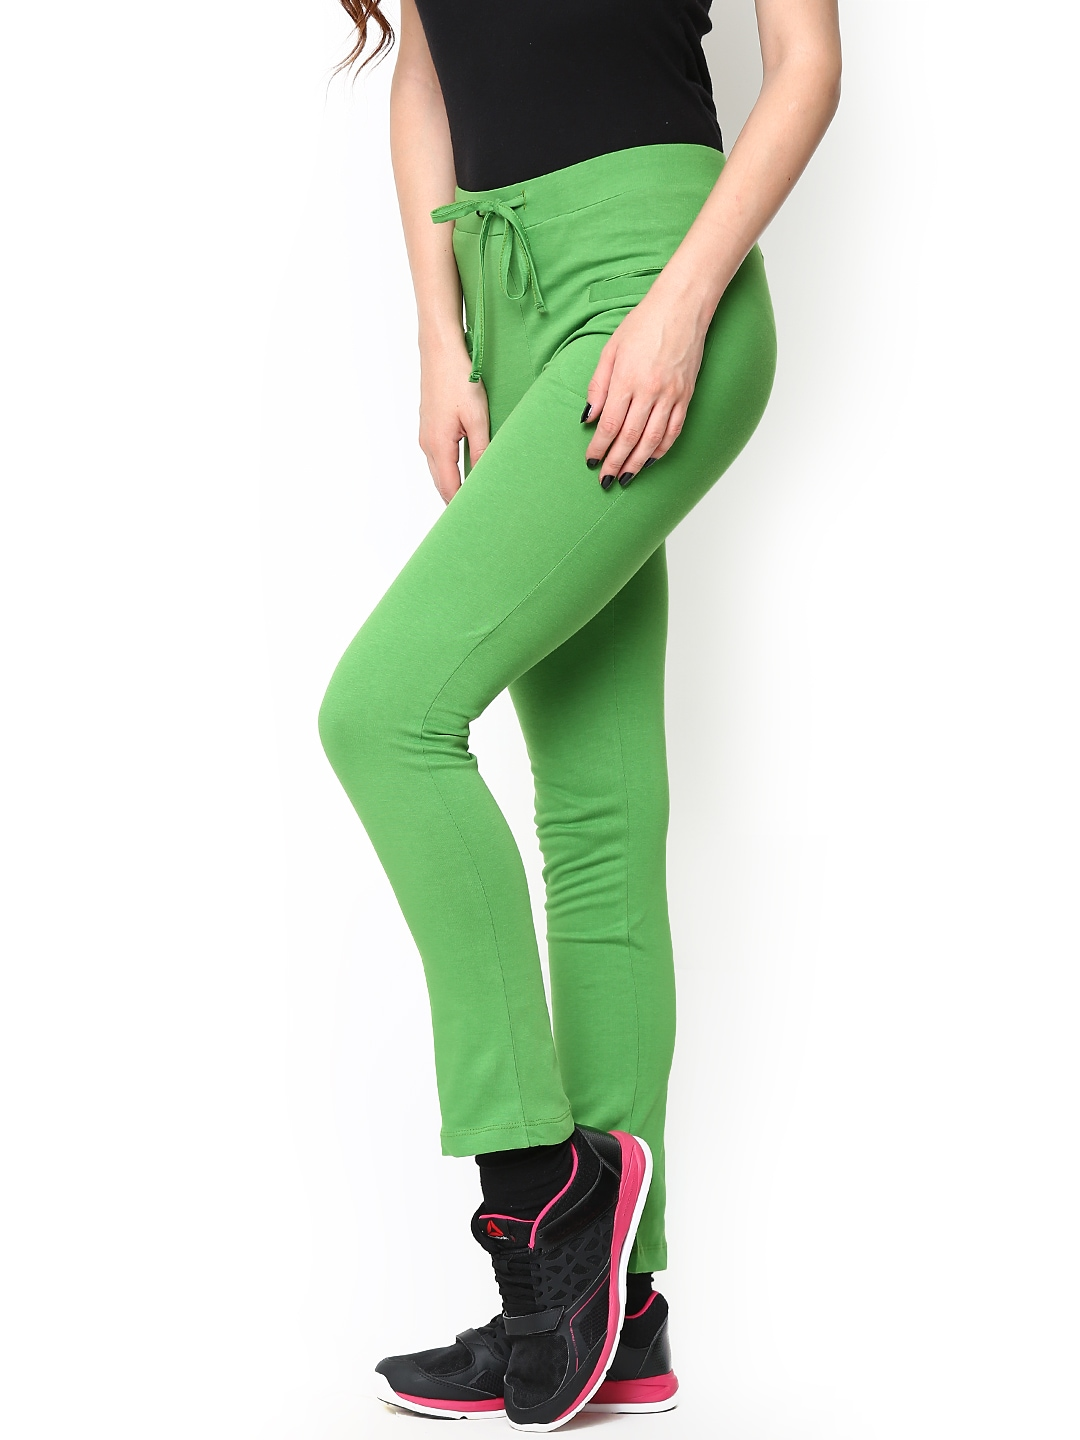 Model Adidas ADIDAS WOMENS FIREBIRD TRACK PANT STYLE G87392  Pricefalls